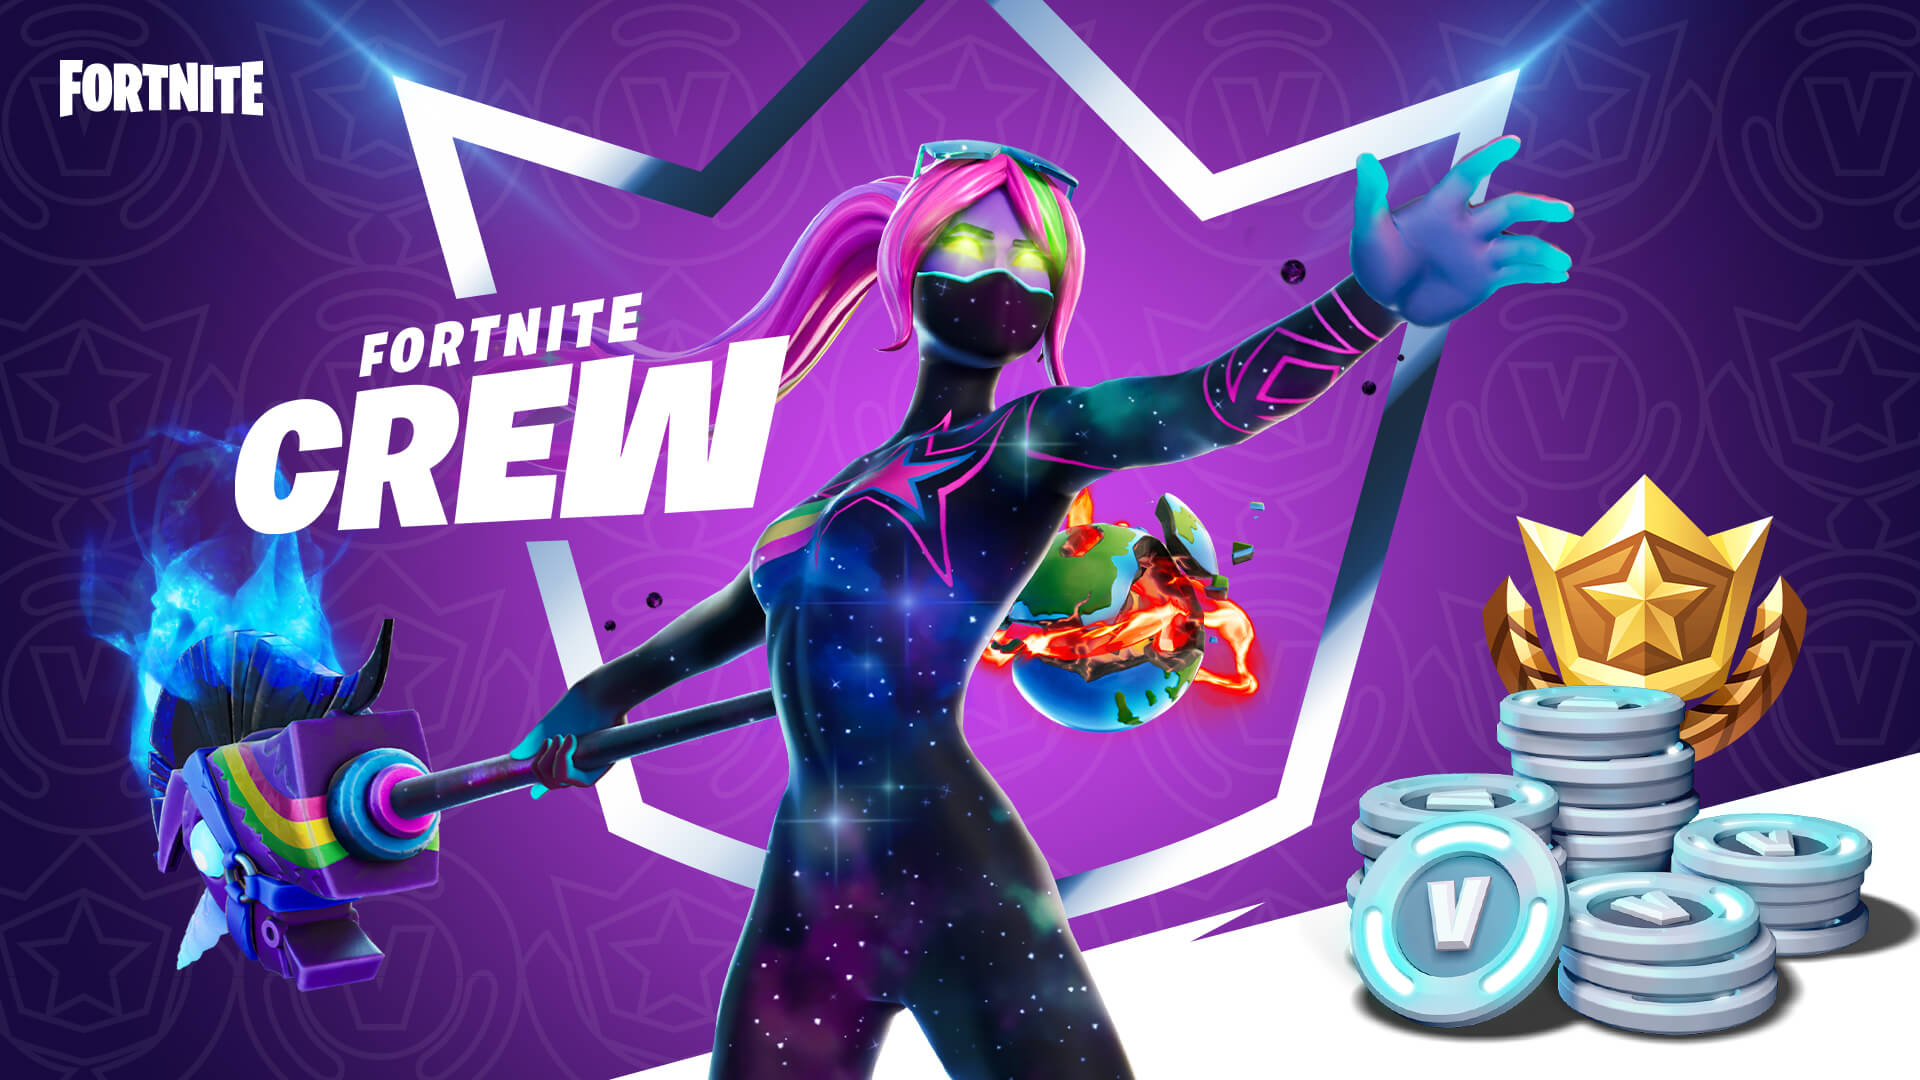 Fortnite adds subscription package for players - Gearburn - gearburn